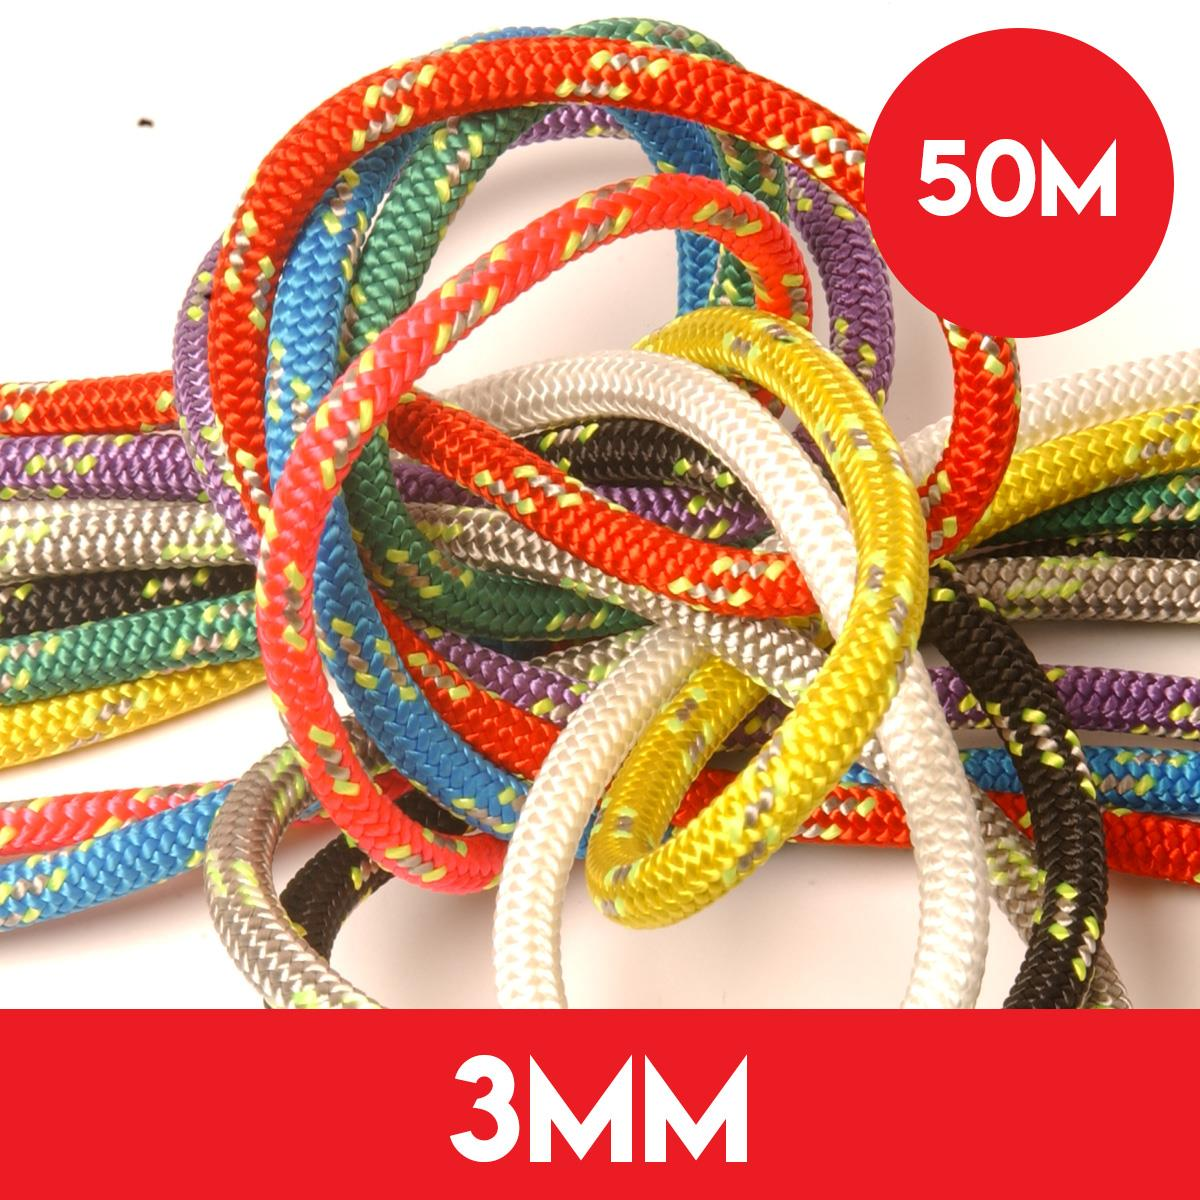 50m Reel of 3mm Kingfisher Evolution Race Rope